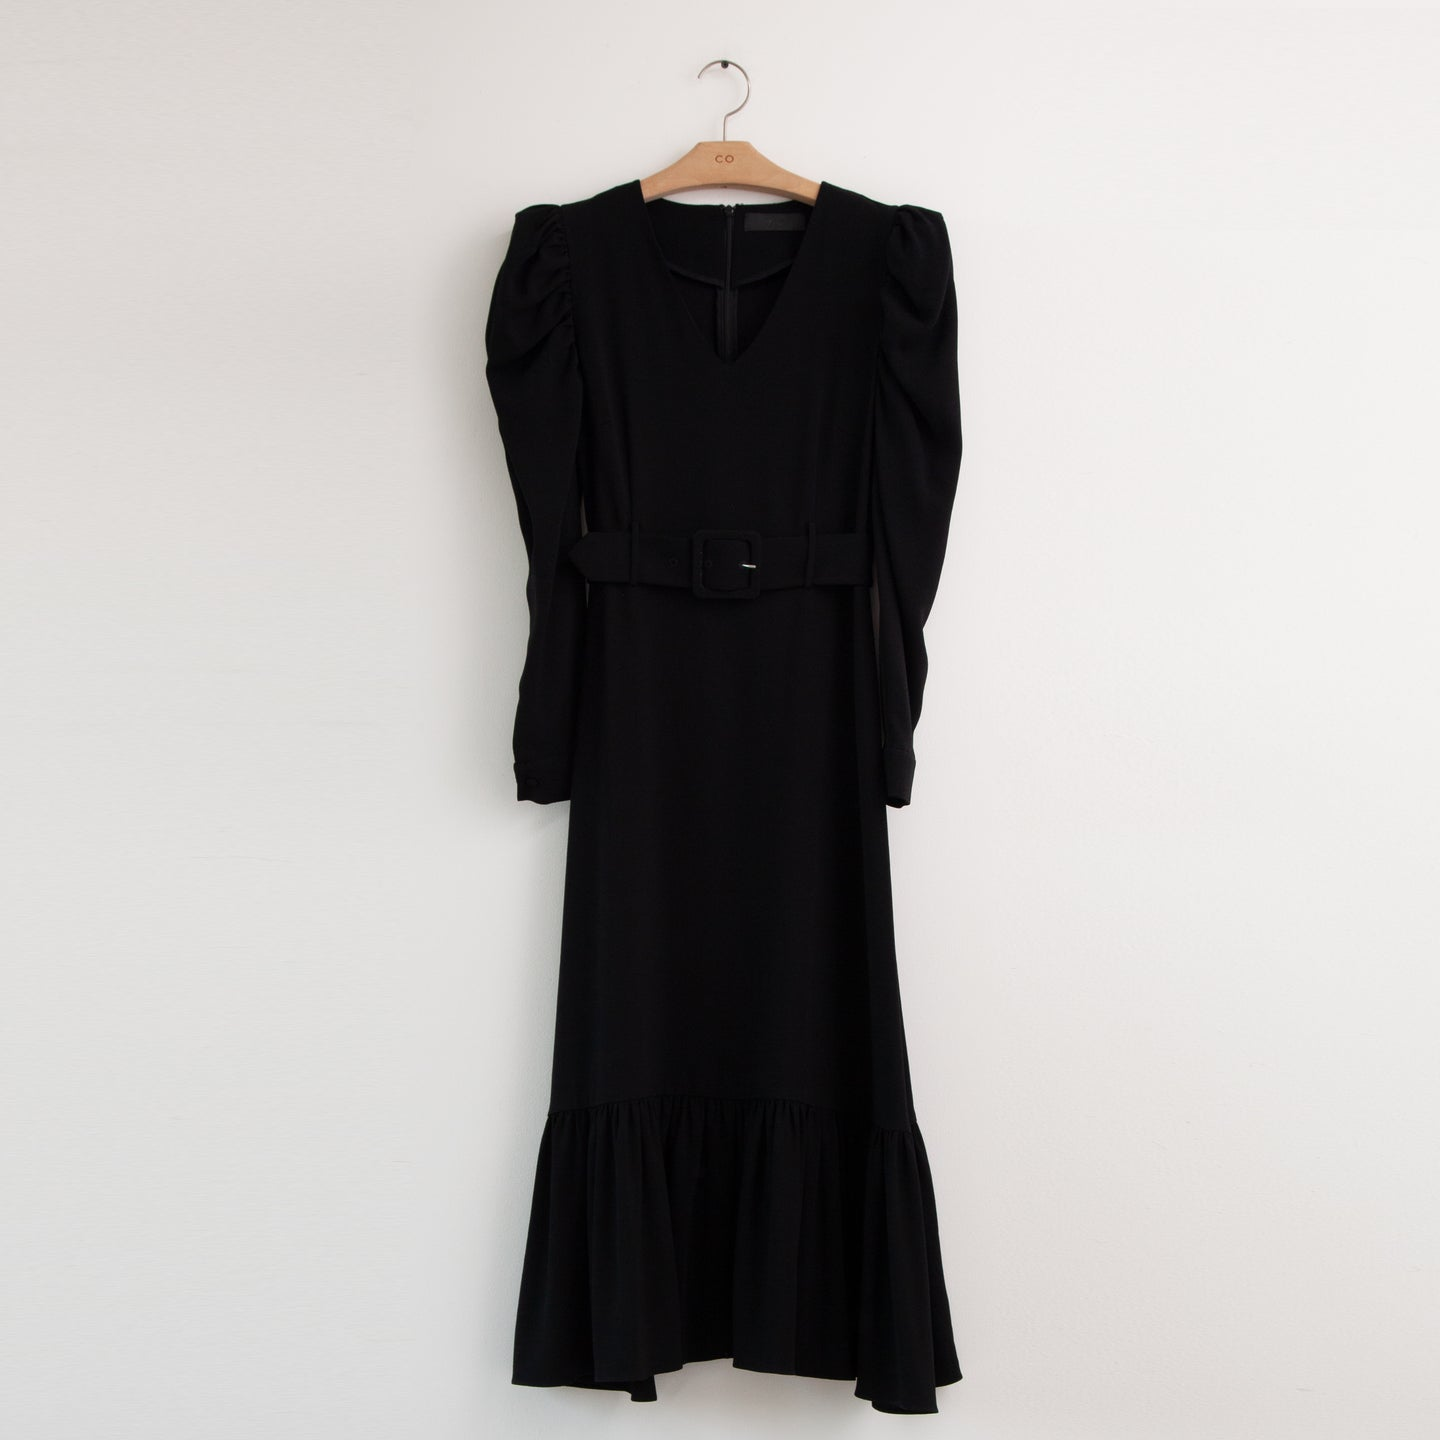 CO - Long sleeve belted dress with ruffle hem and shoulder rouching in black japanese crepe